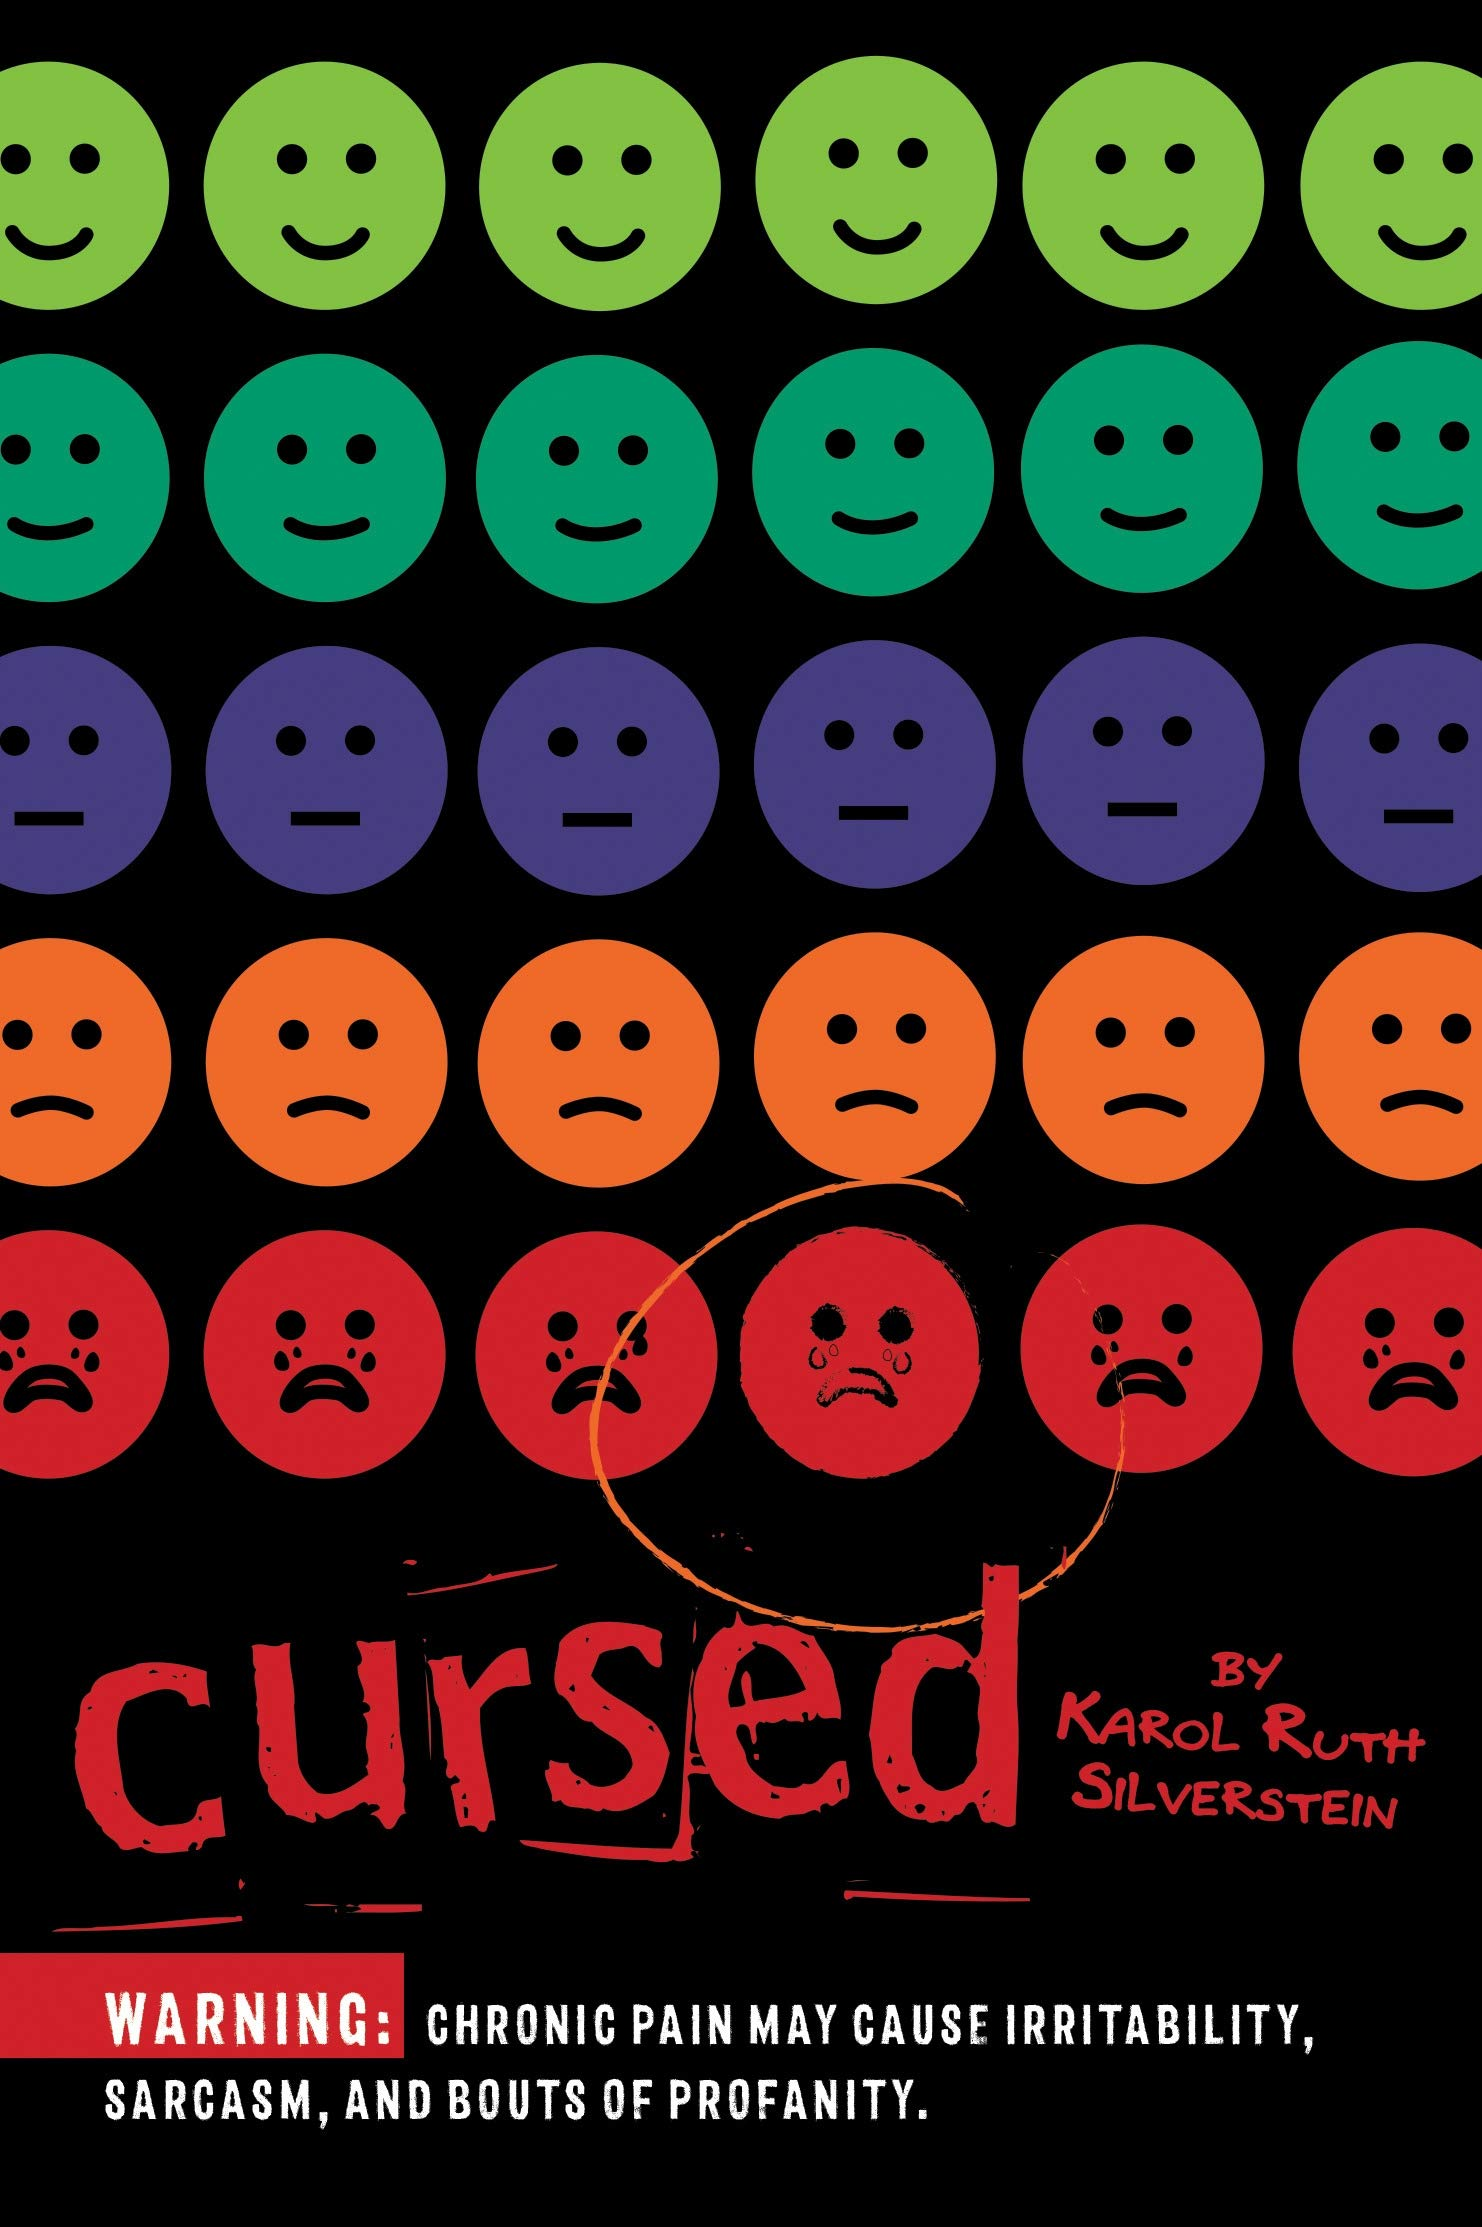 CURSED by Karol Ruth Silverstein (Charlesbridge Teen, June 2019)